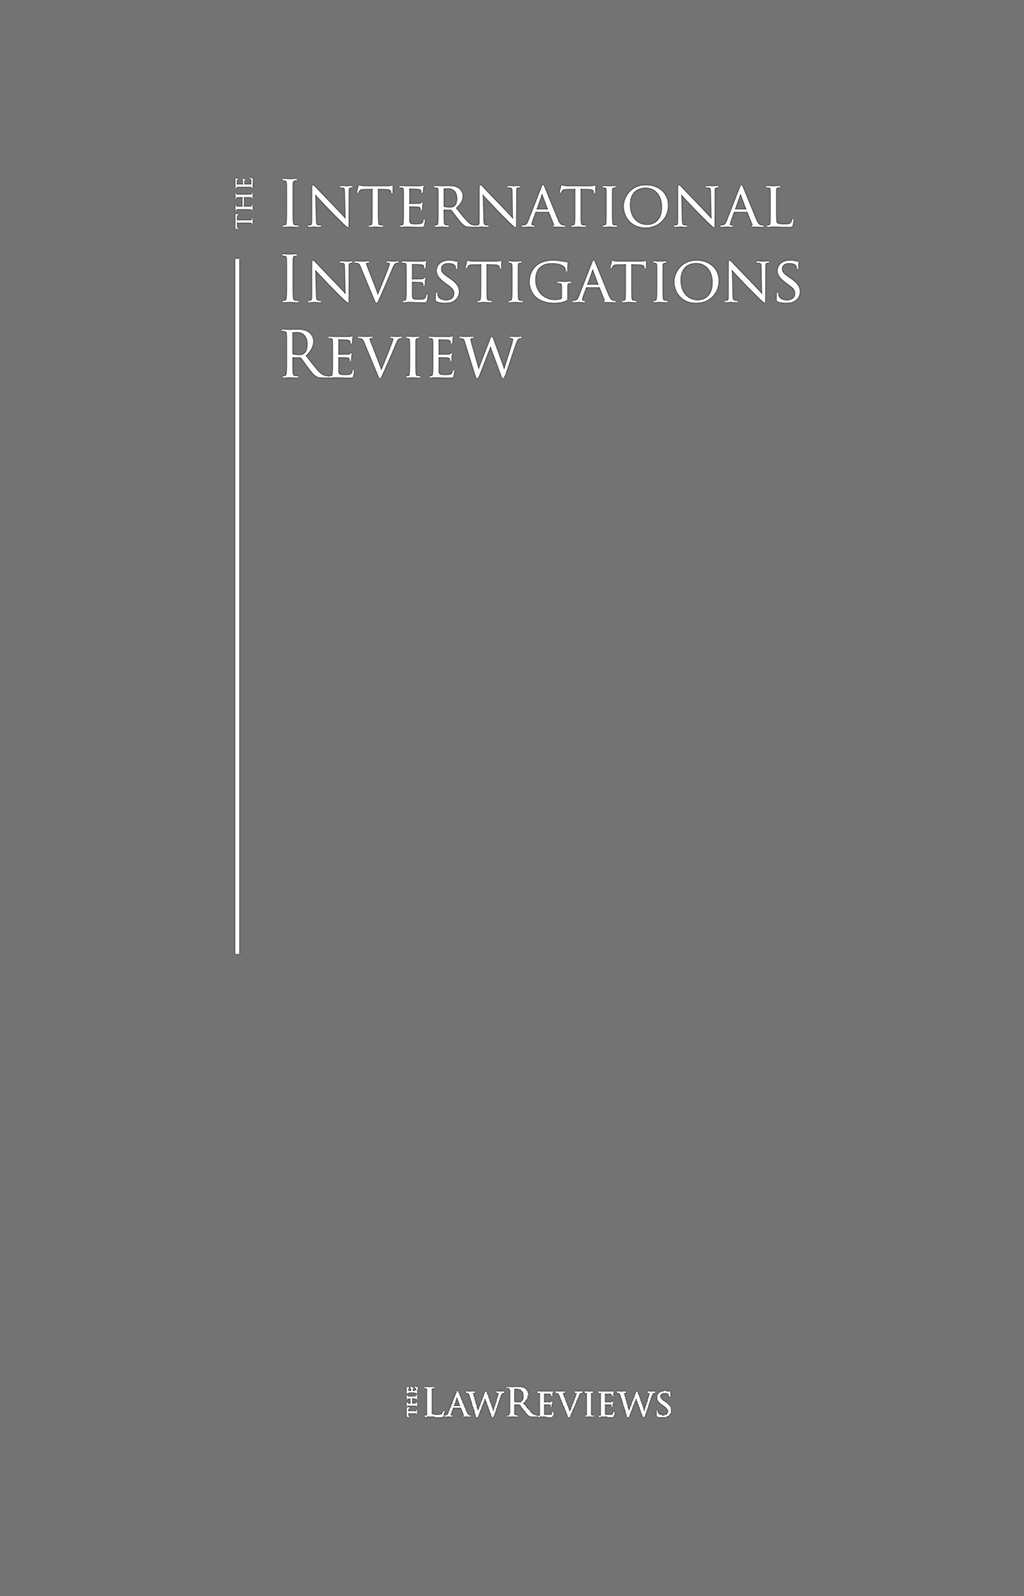 The International Investigations Review